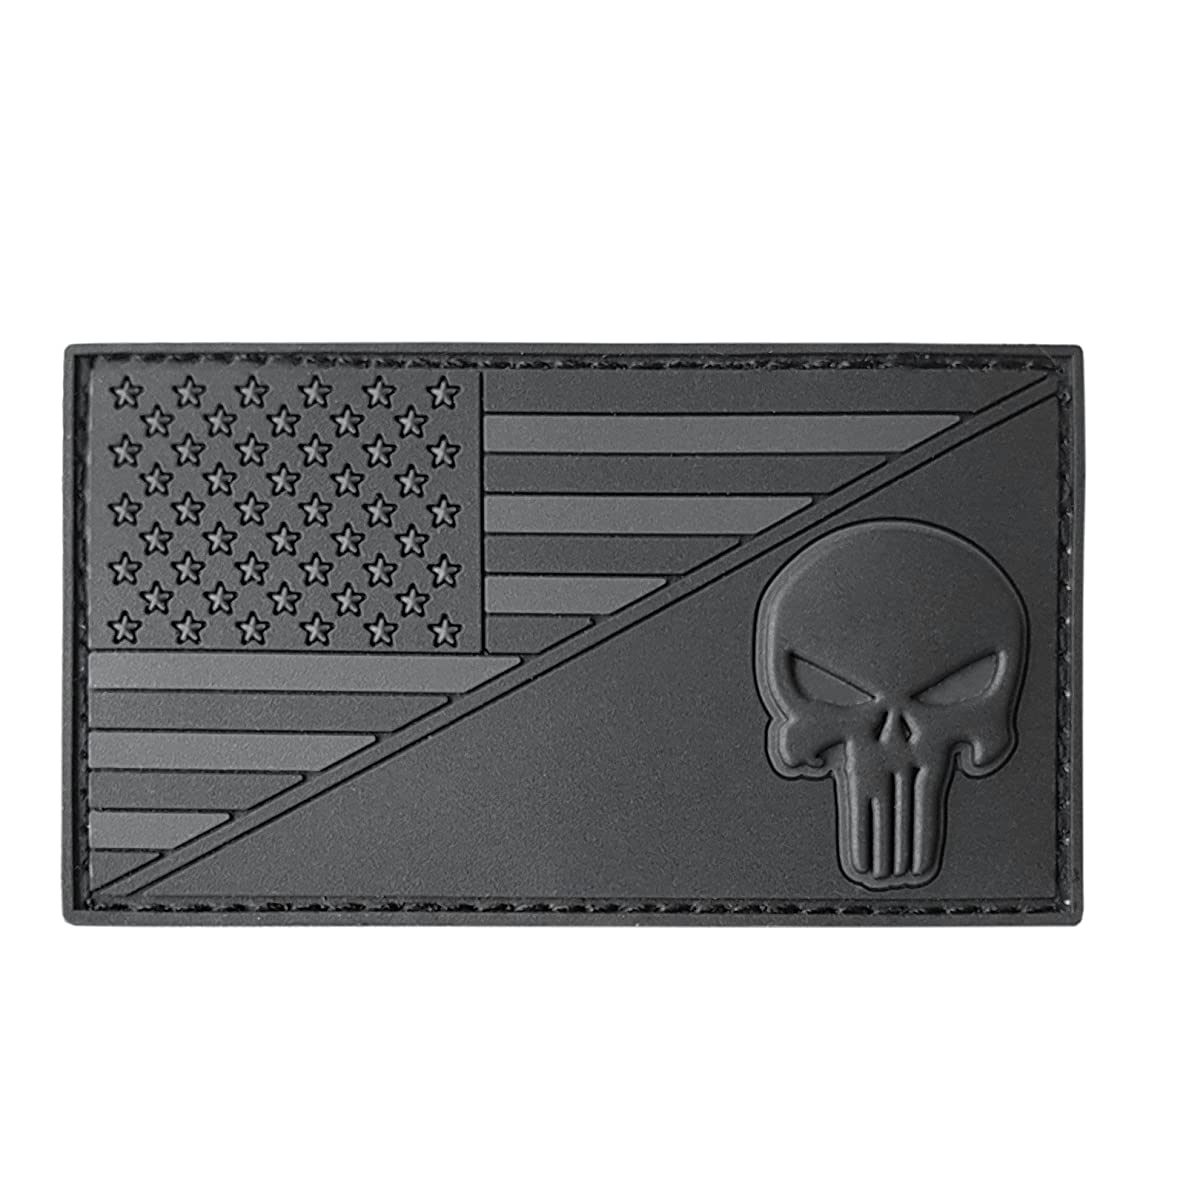 LEGEEON All Black USA American Flag Punisher Skull ACU Dark Subdued Morale PVC Rubber Touch Fastener